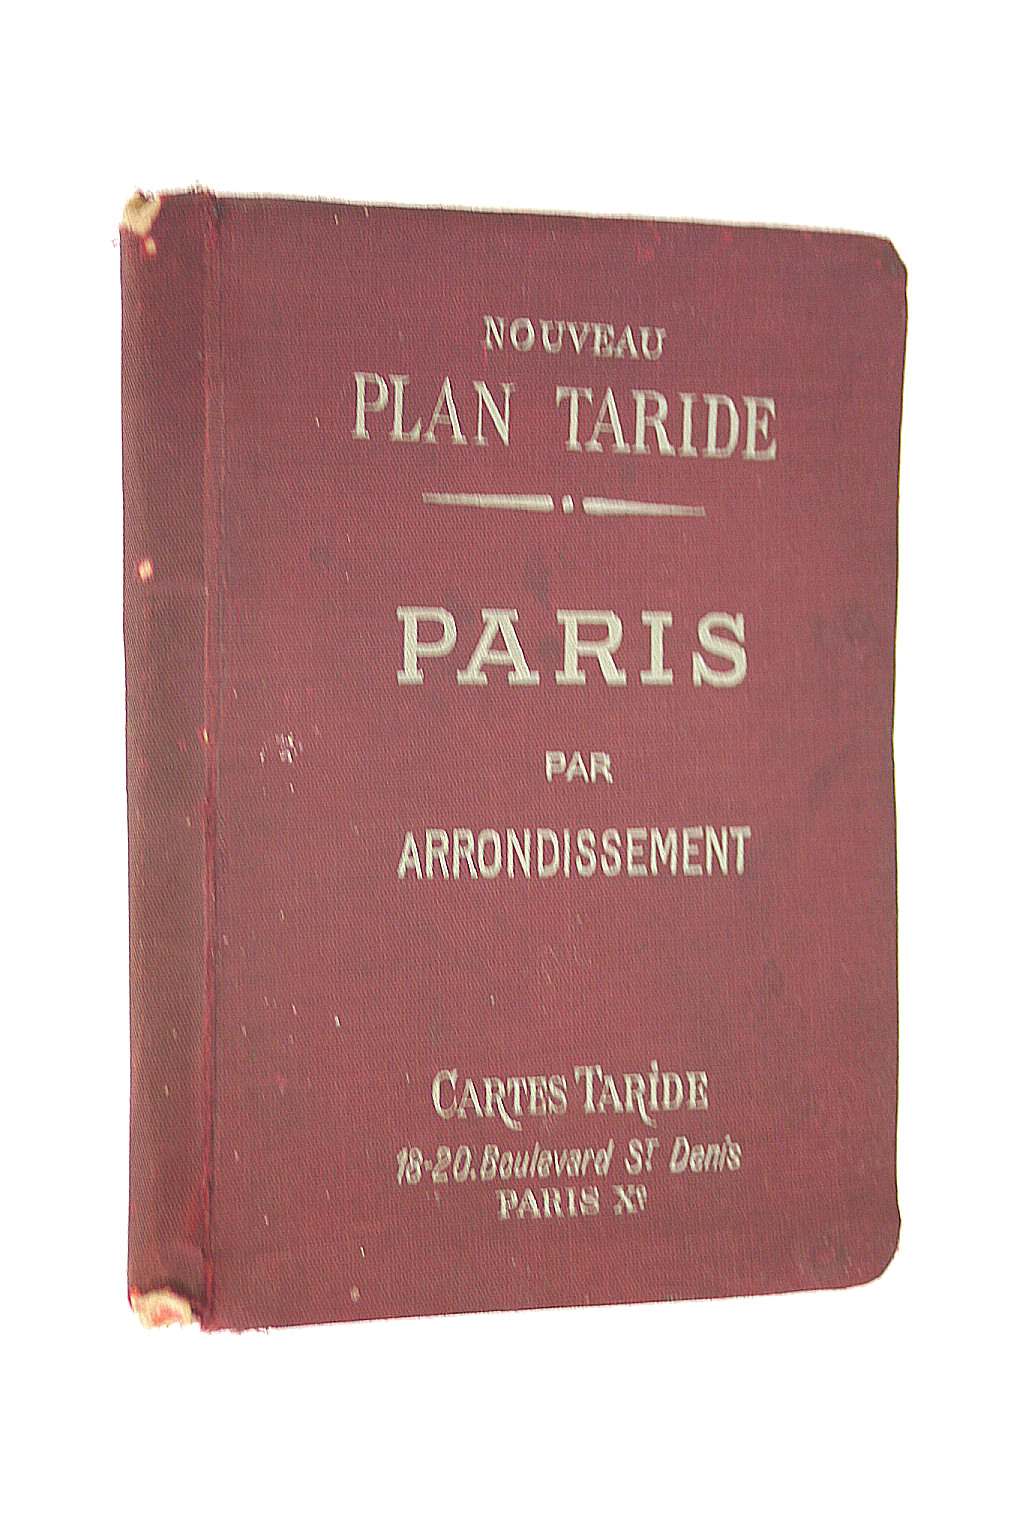 Image for Nouveau Plan Taride. Paris Par Arrondissement.